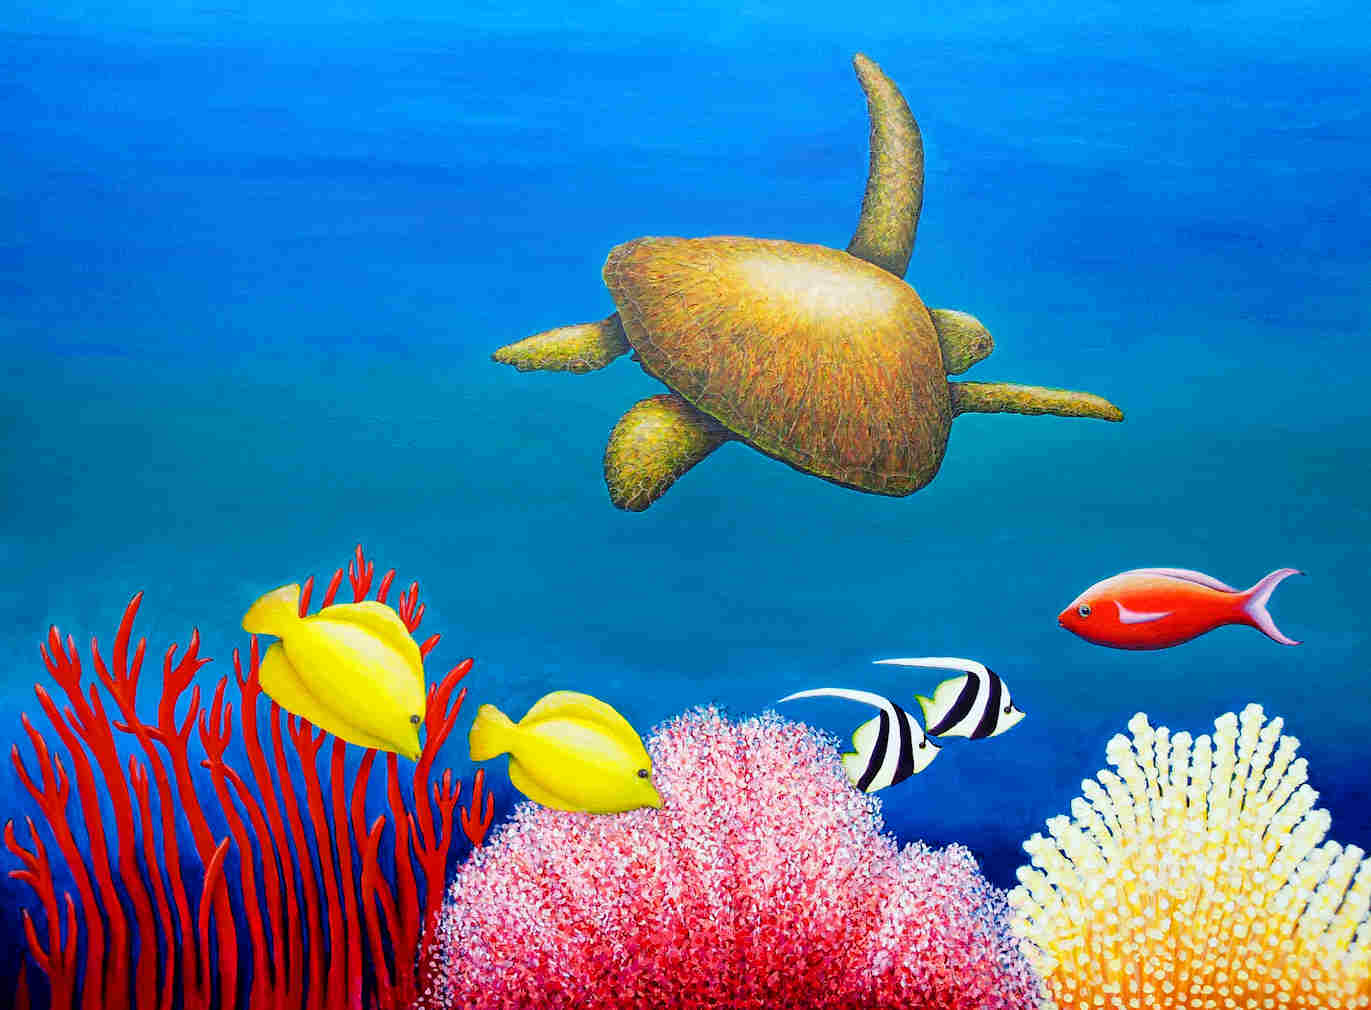 Green Sea Turtle painting 110 x 76 cm